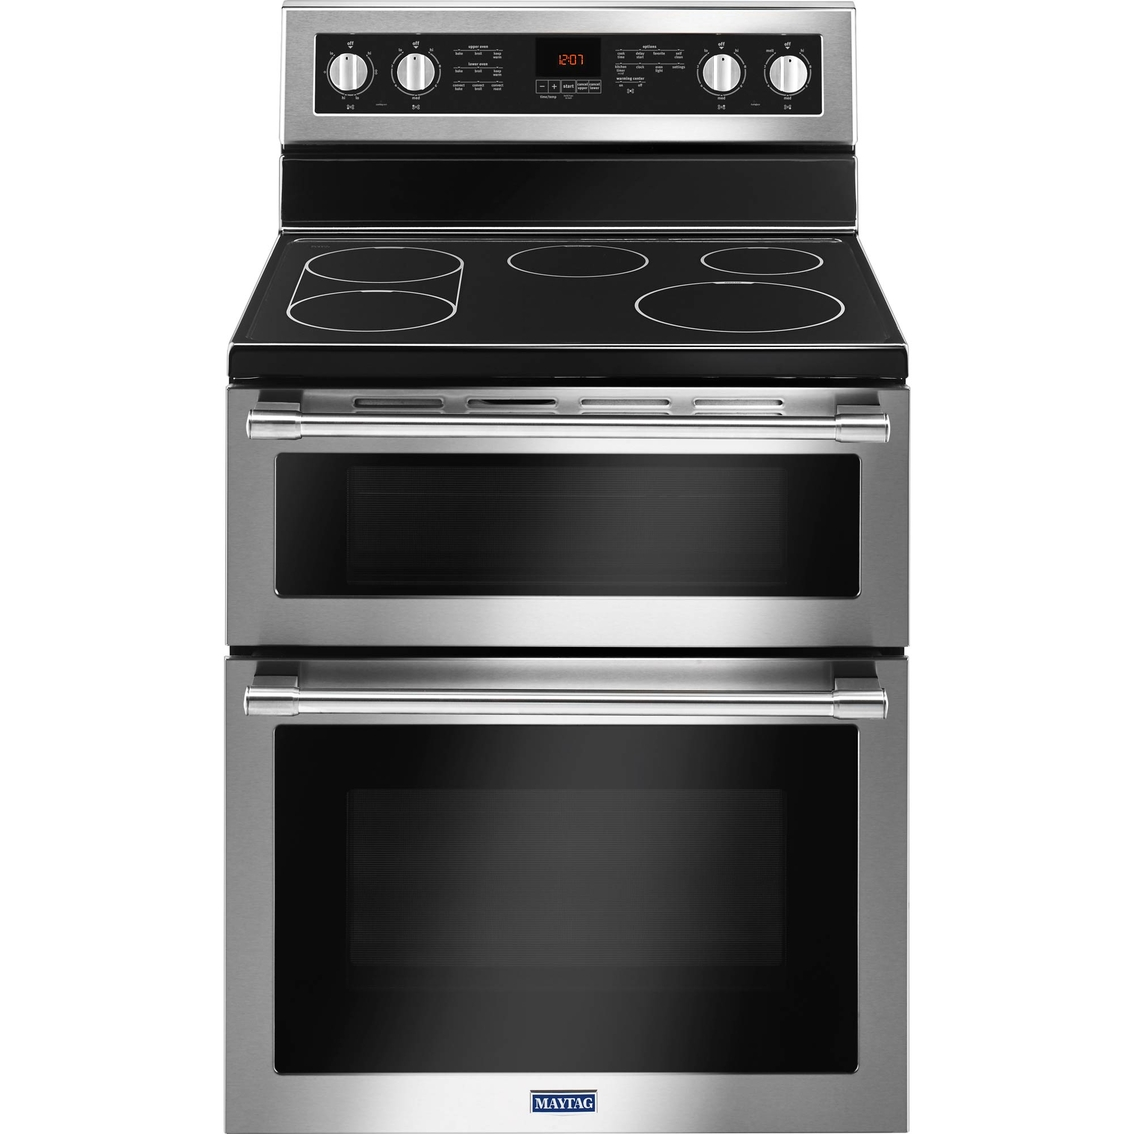 Maytag 6 7 cu ft electric range with double convection oven electric ranges home - Maytag electric double oven range ...